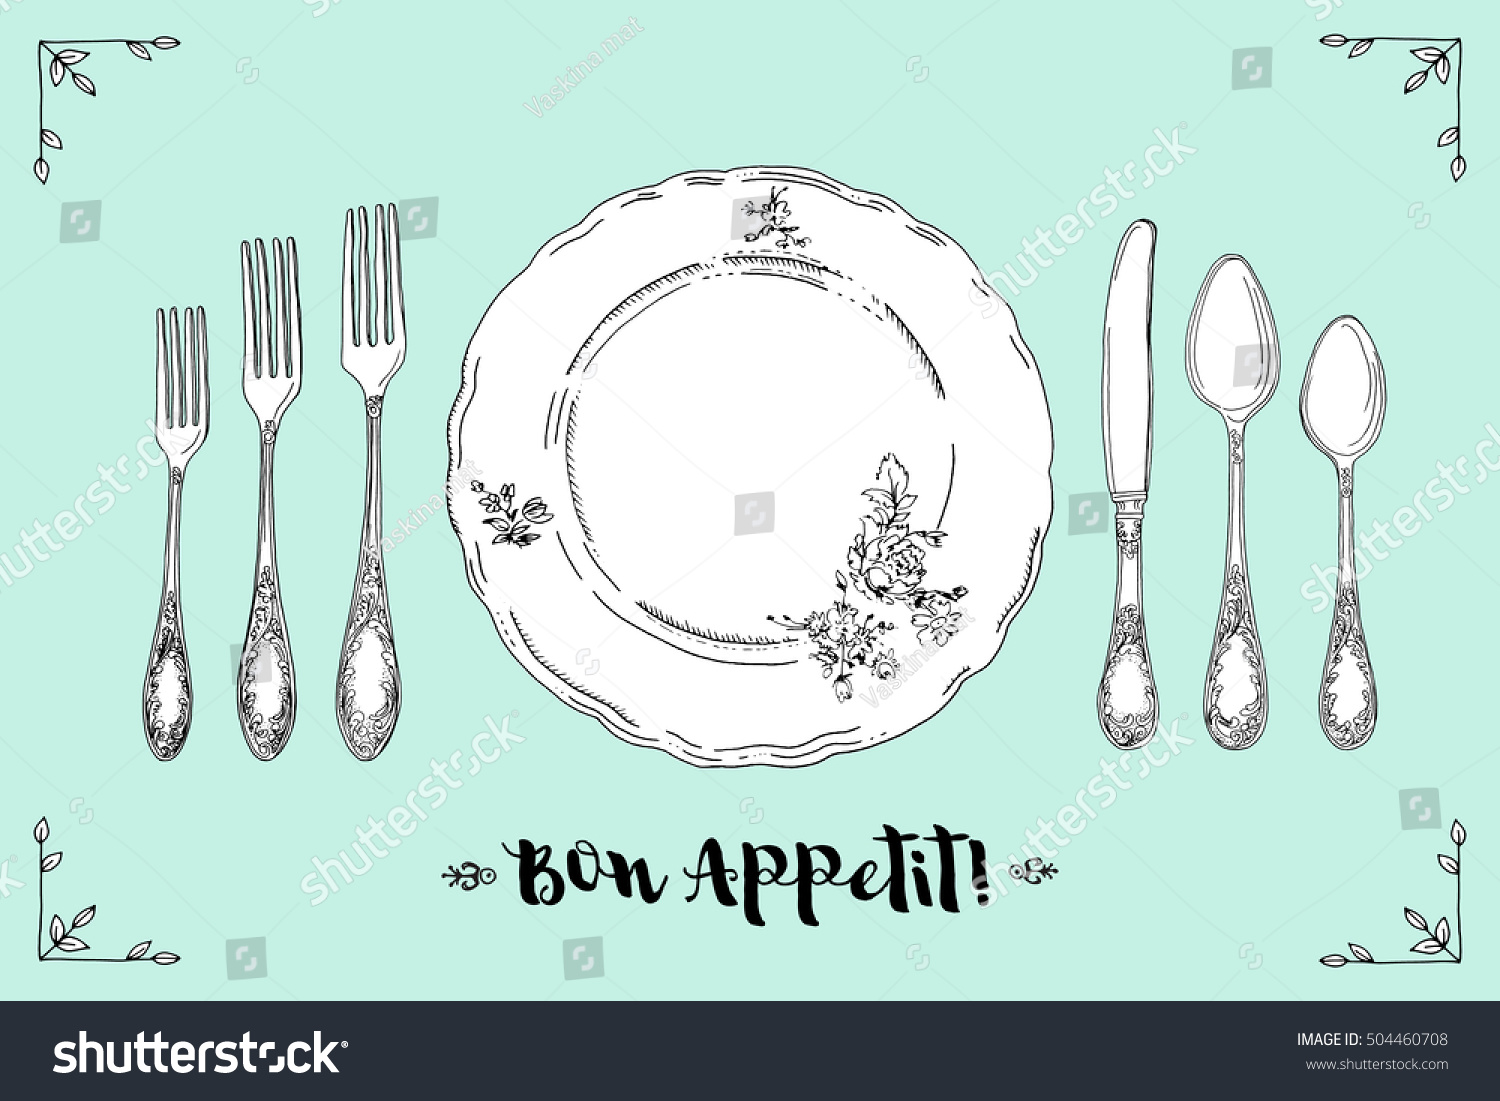 Hand drawn illustration of curly ornamental silver tableware plate a turquoise background Table setting set Hand drawn design element Sketch vintage Vector Illustration